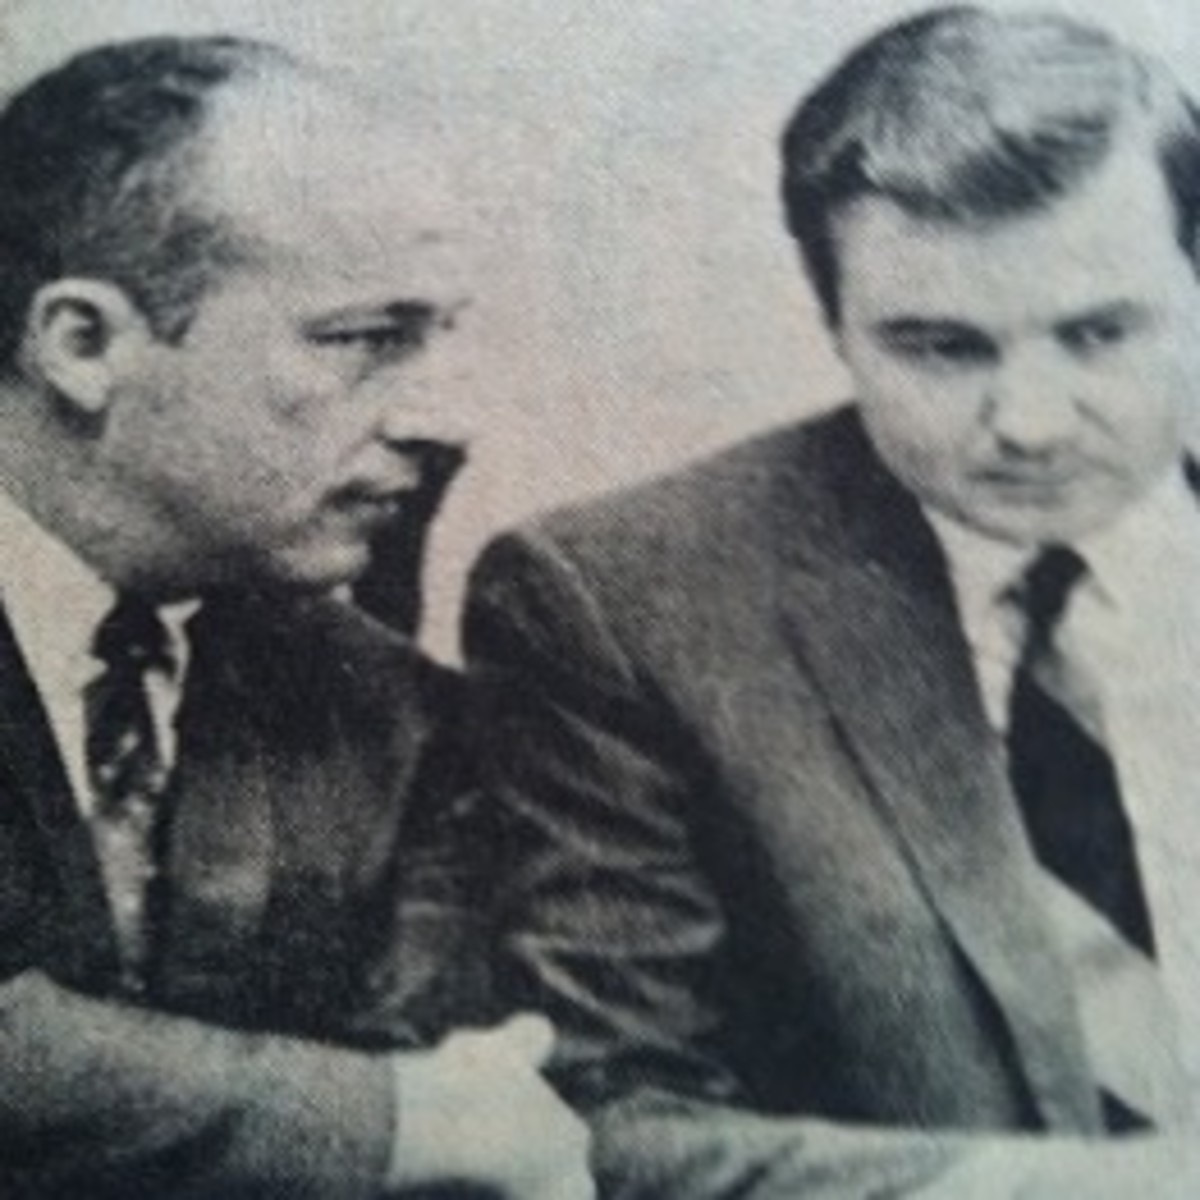 Herman Taylor, Jr. (left) conversing with his attorney, Bernard K. Smith